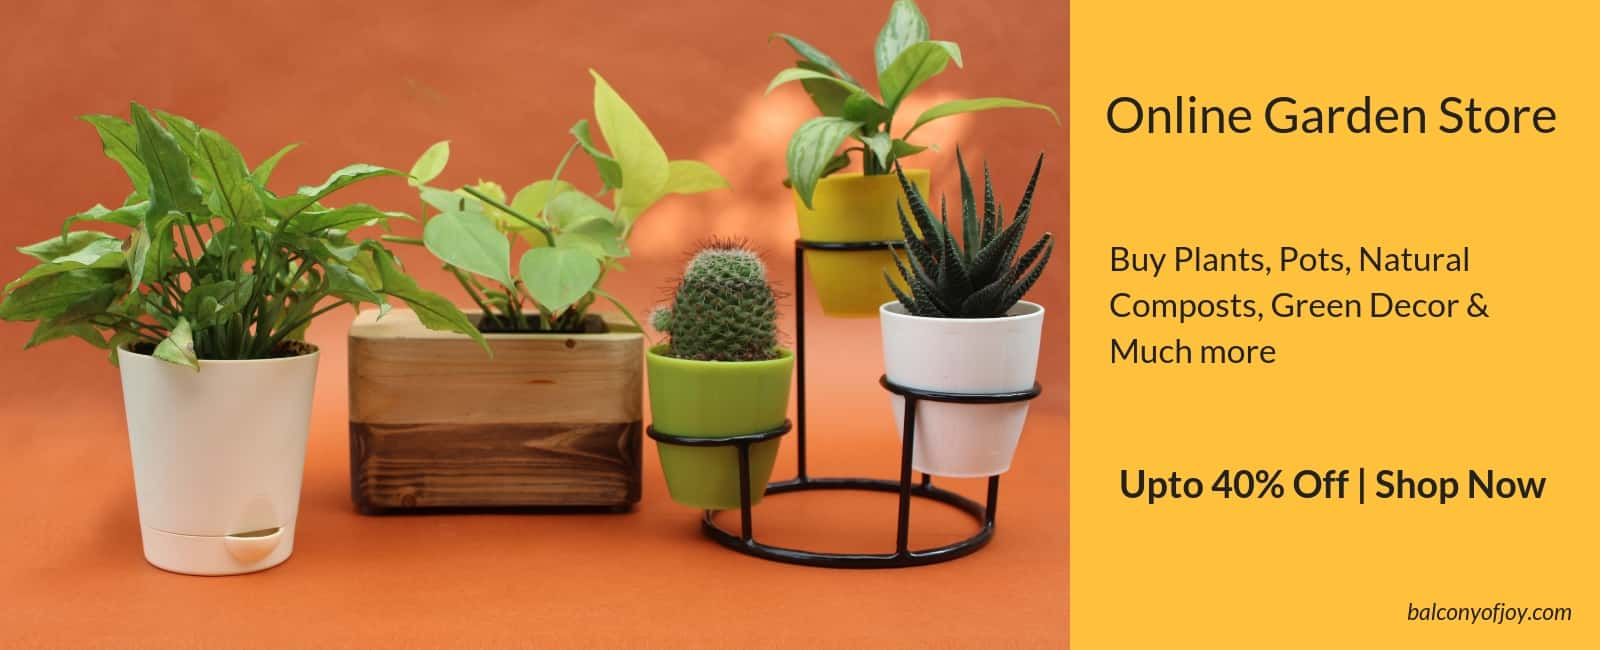 Online urban gardening store, buy plants, pots and much more